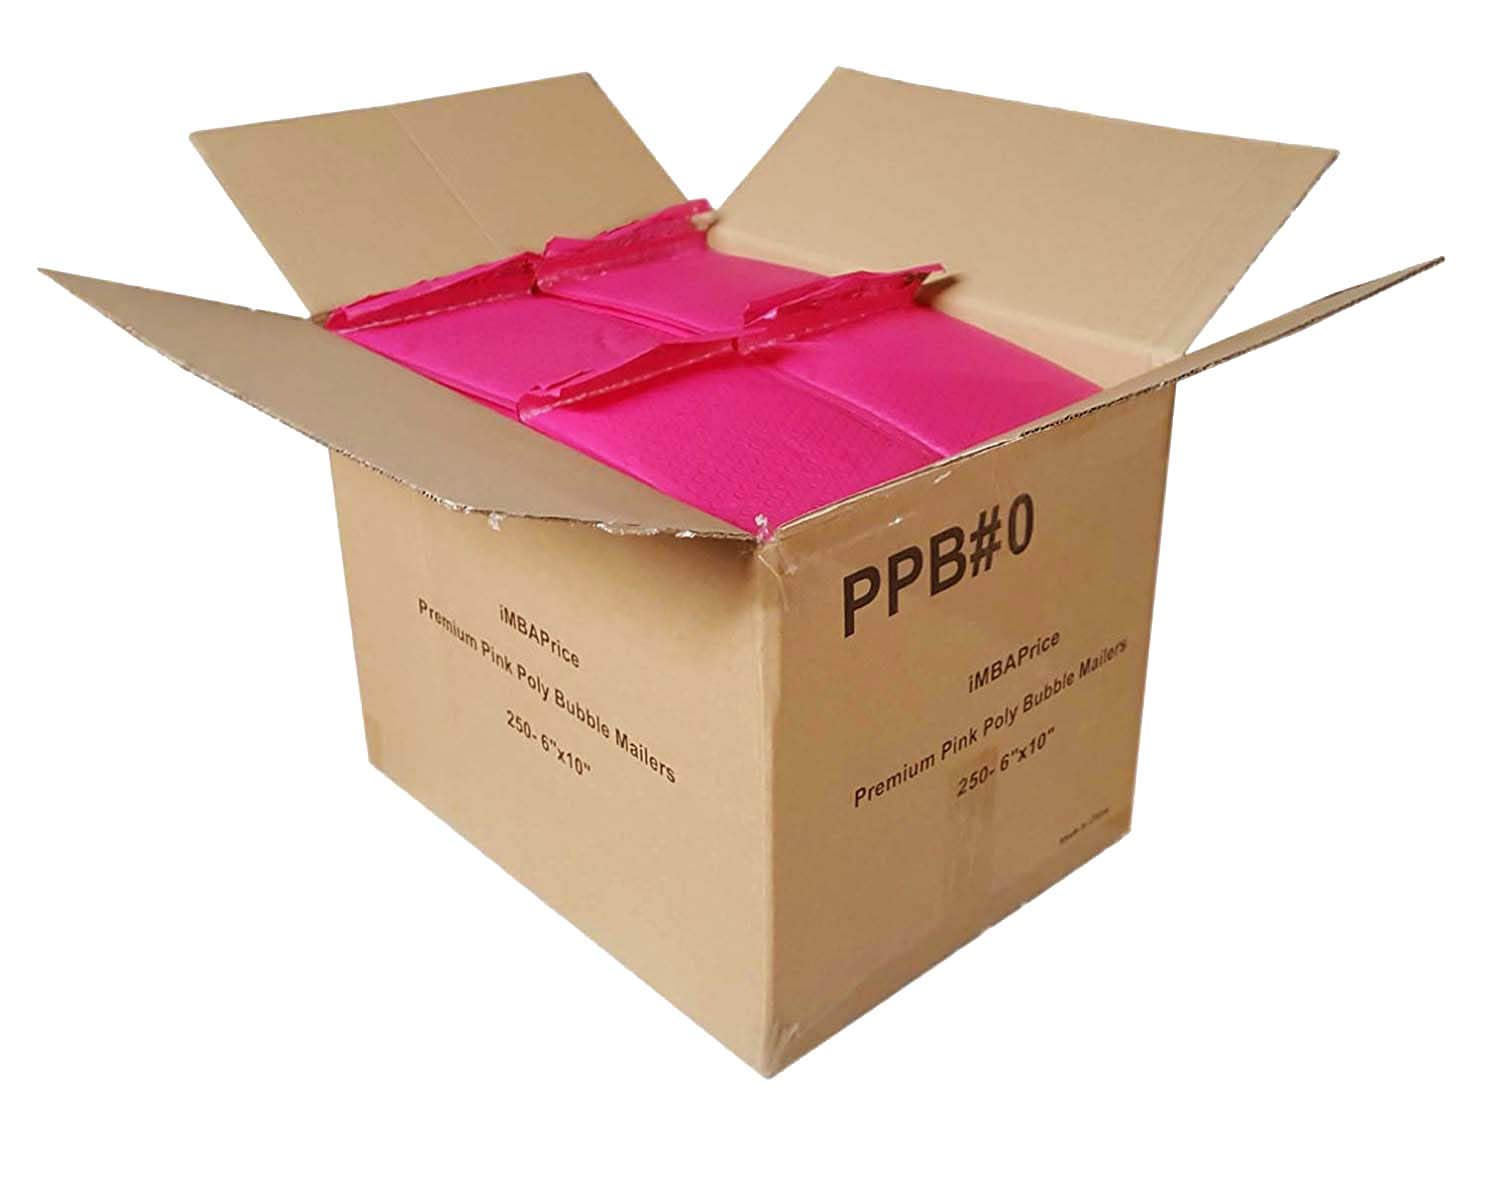 iMBAPrice 250-Pack #0 (6'' x 10'') Premium Hot Pink Color Self Seal Poly Bubble Mailers Padded Shipping Envelopes (Total 250 Bags) by iMBAPrice